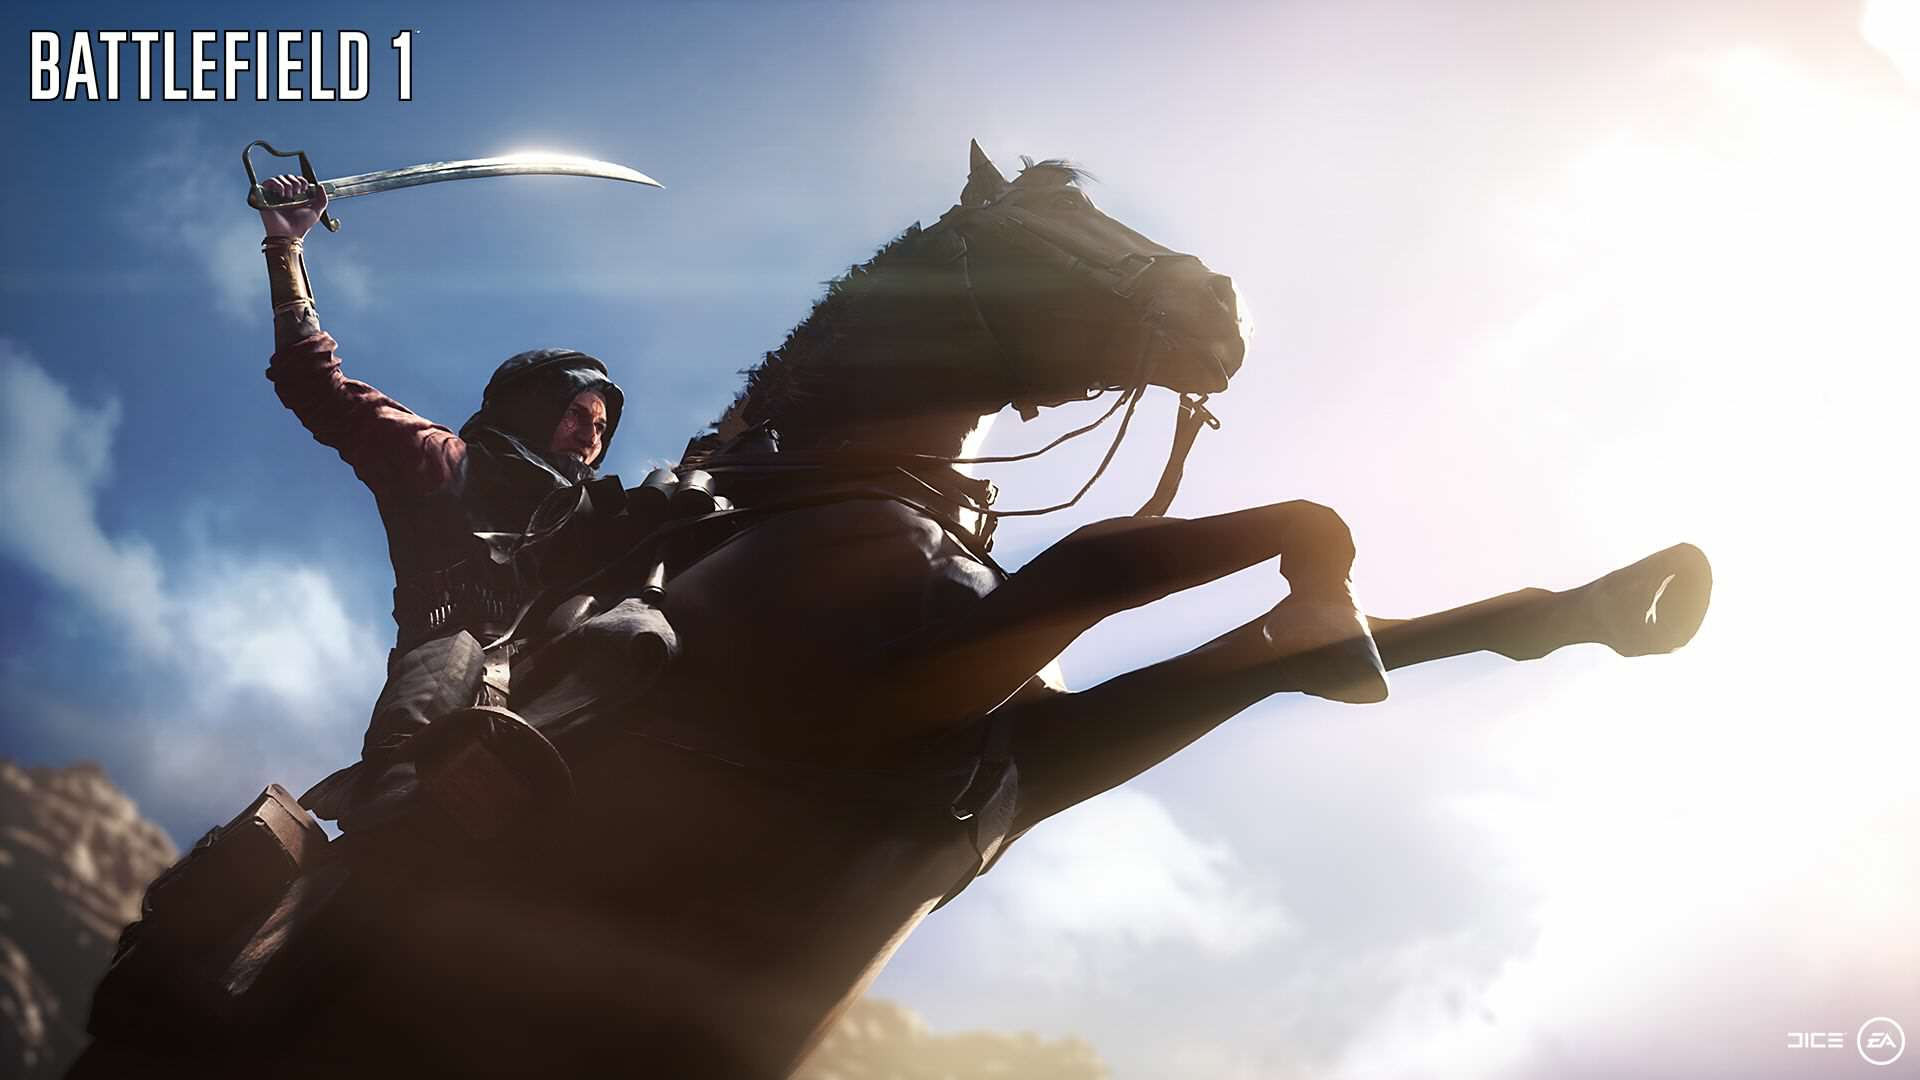 New Battlefield 1 Teaser Shows Off Melee Combat Battlefield1 Reveal 02.0